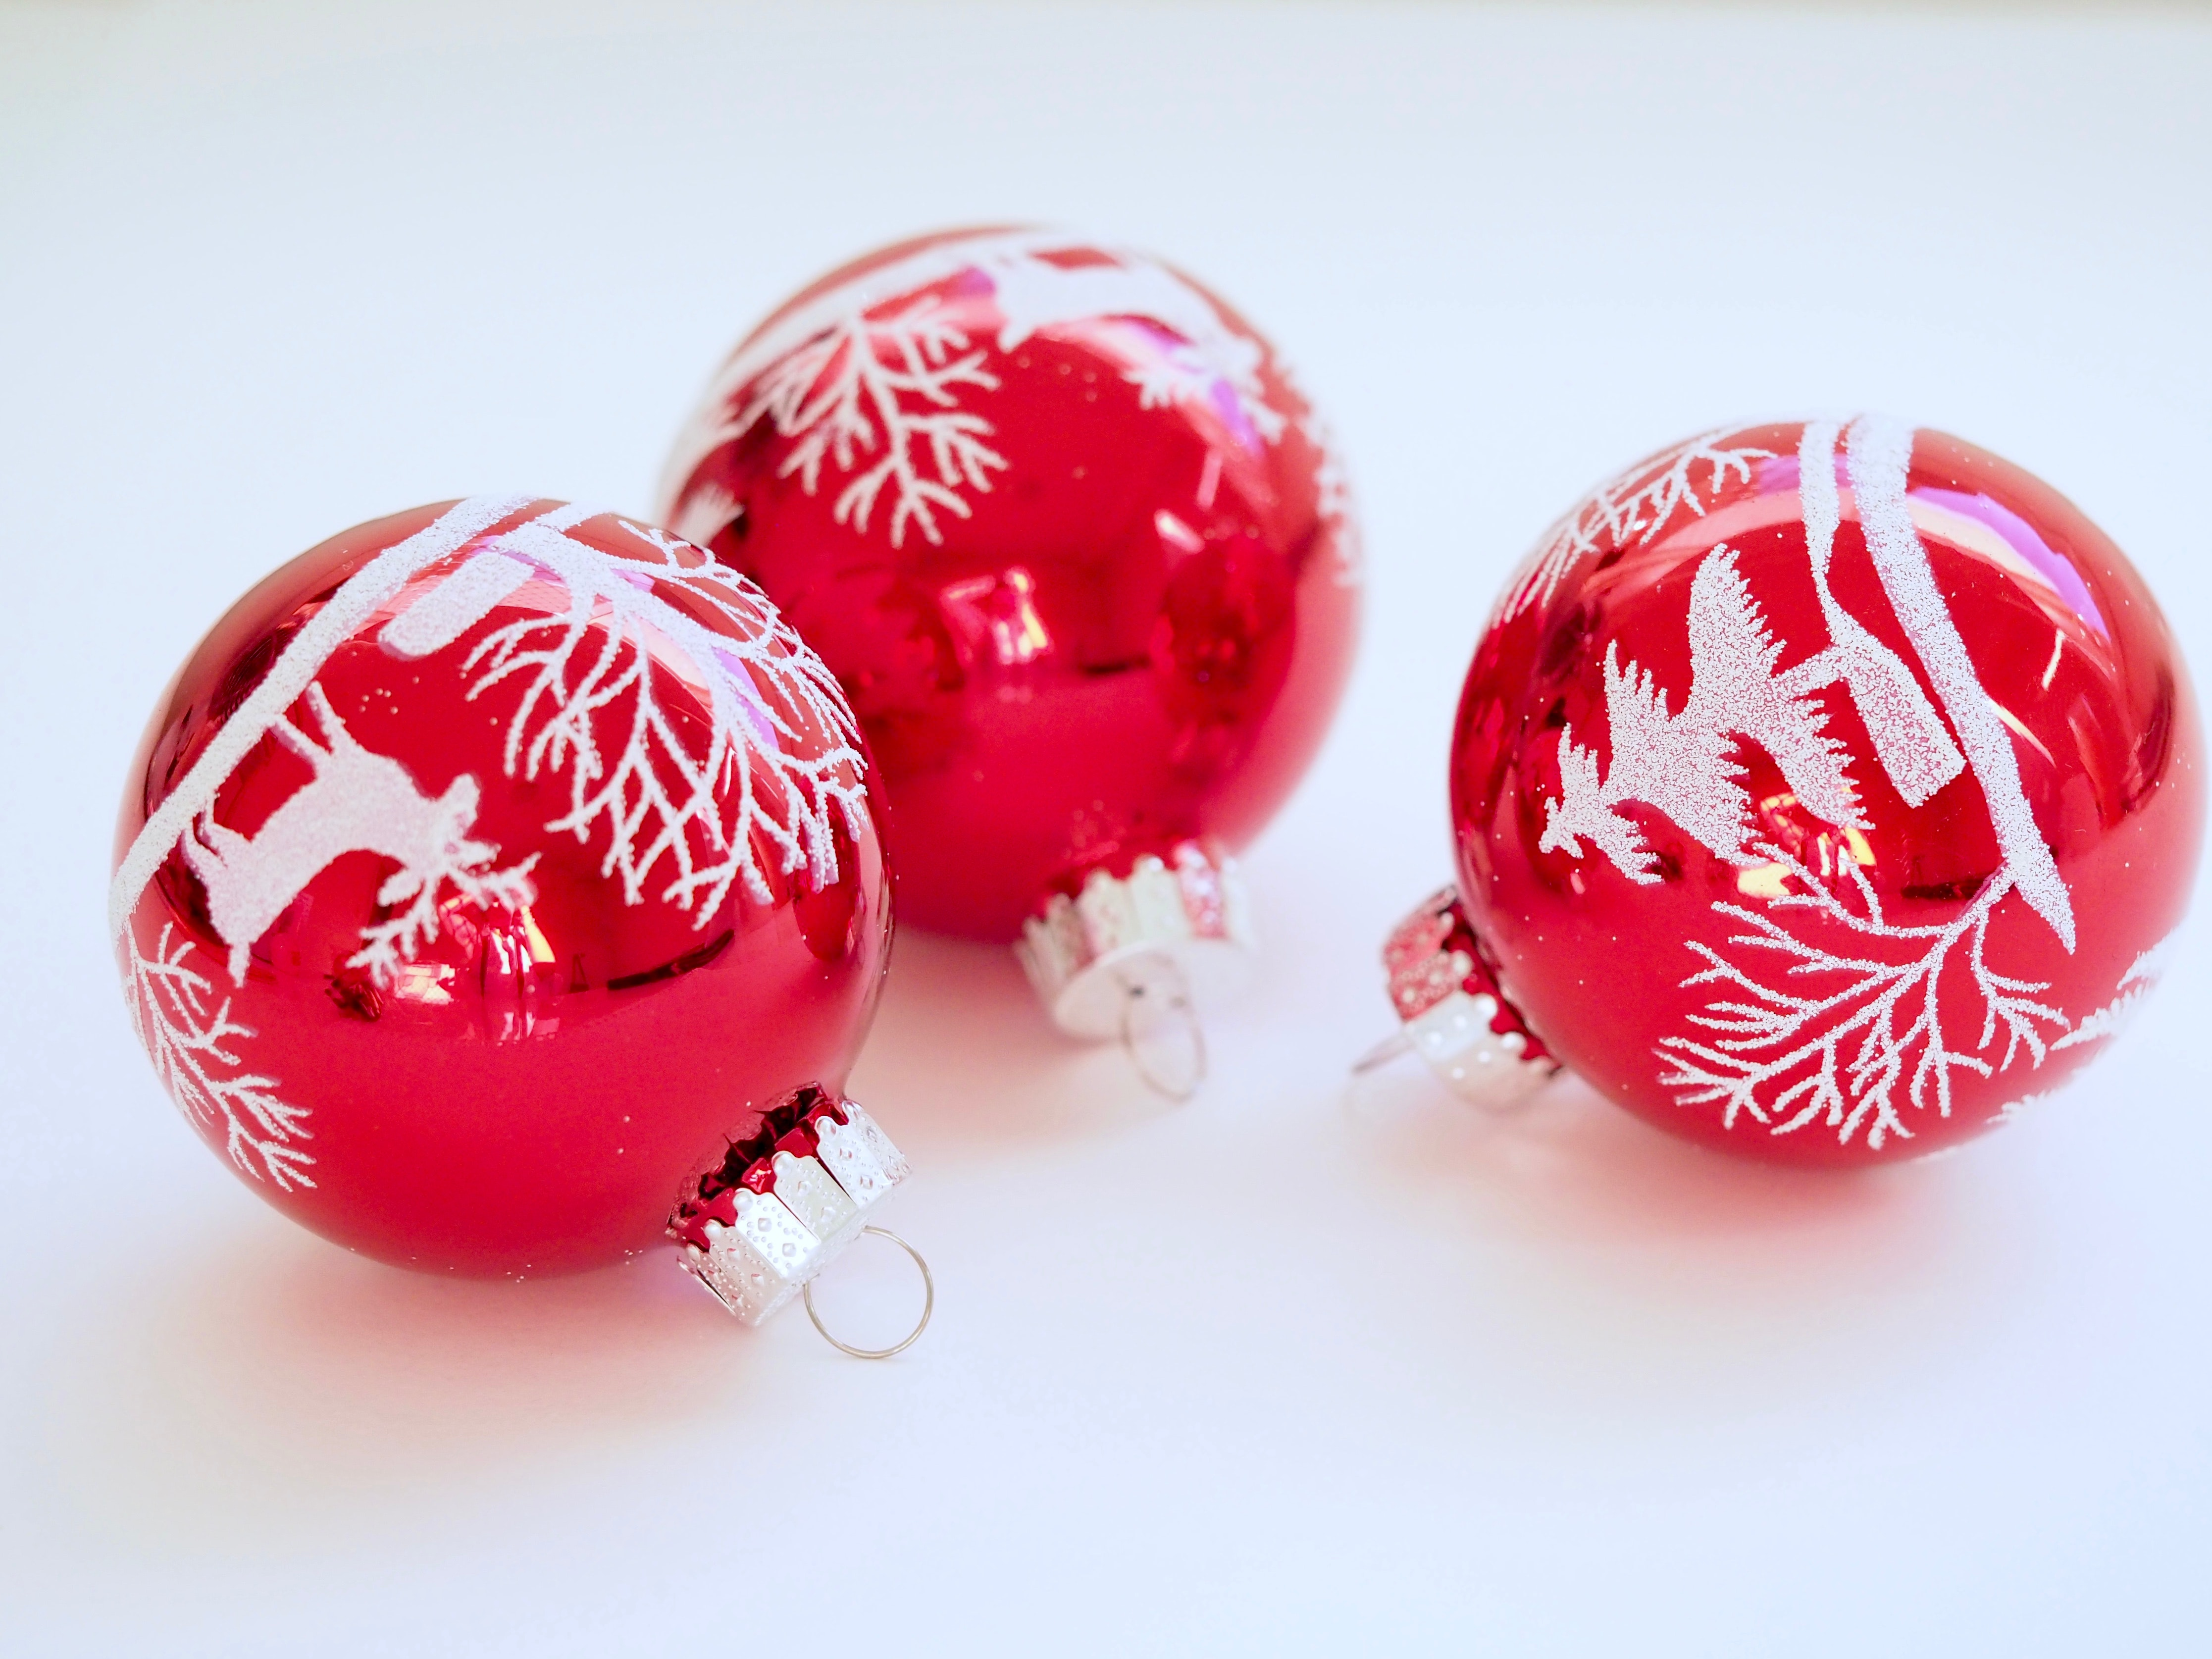 Three White-and-red Christmas Tree Printed Baubles, Ball, Design, Traditional, Sphere, HQ Photo